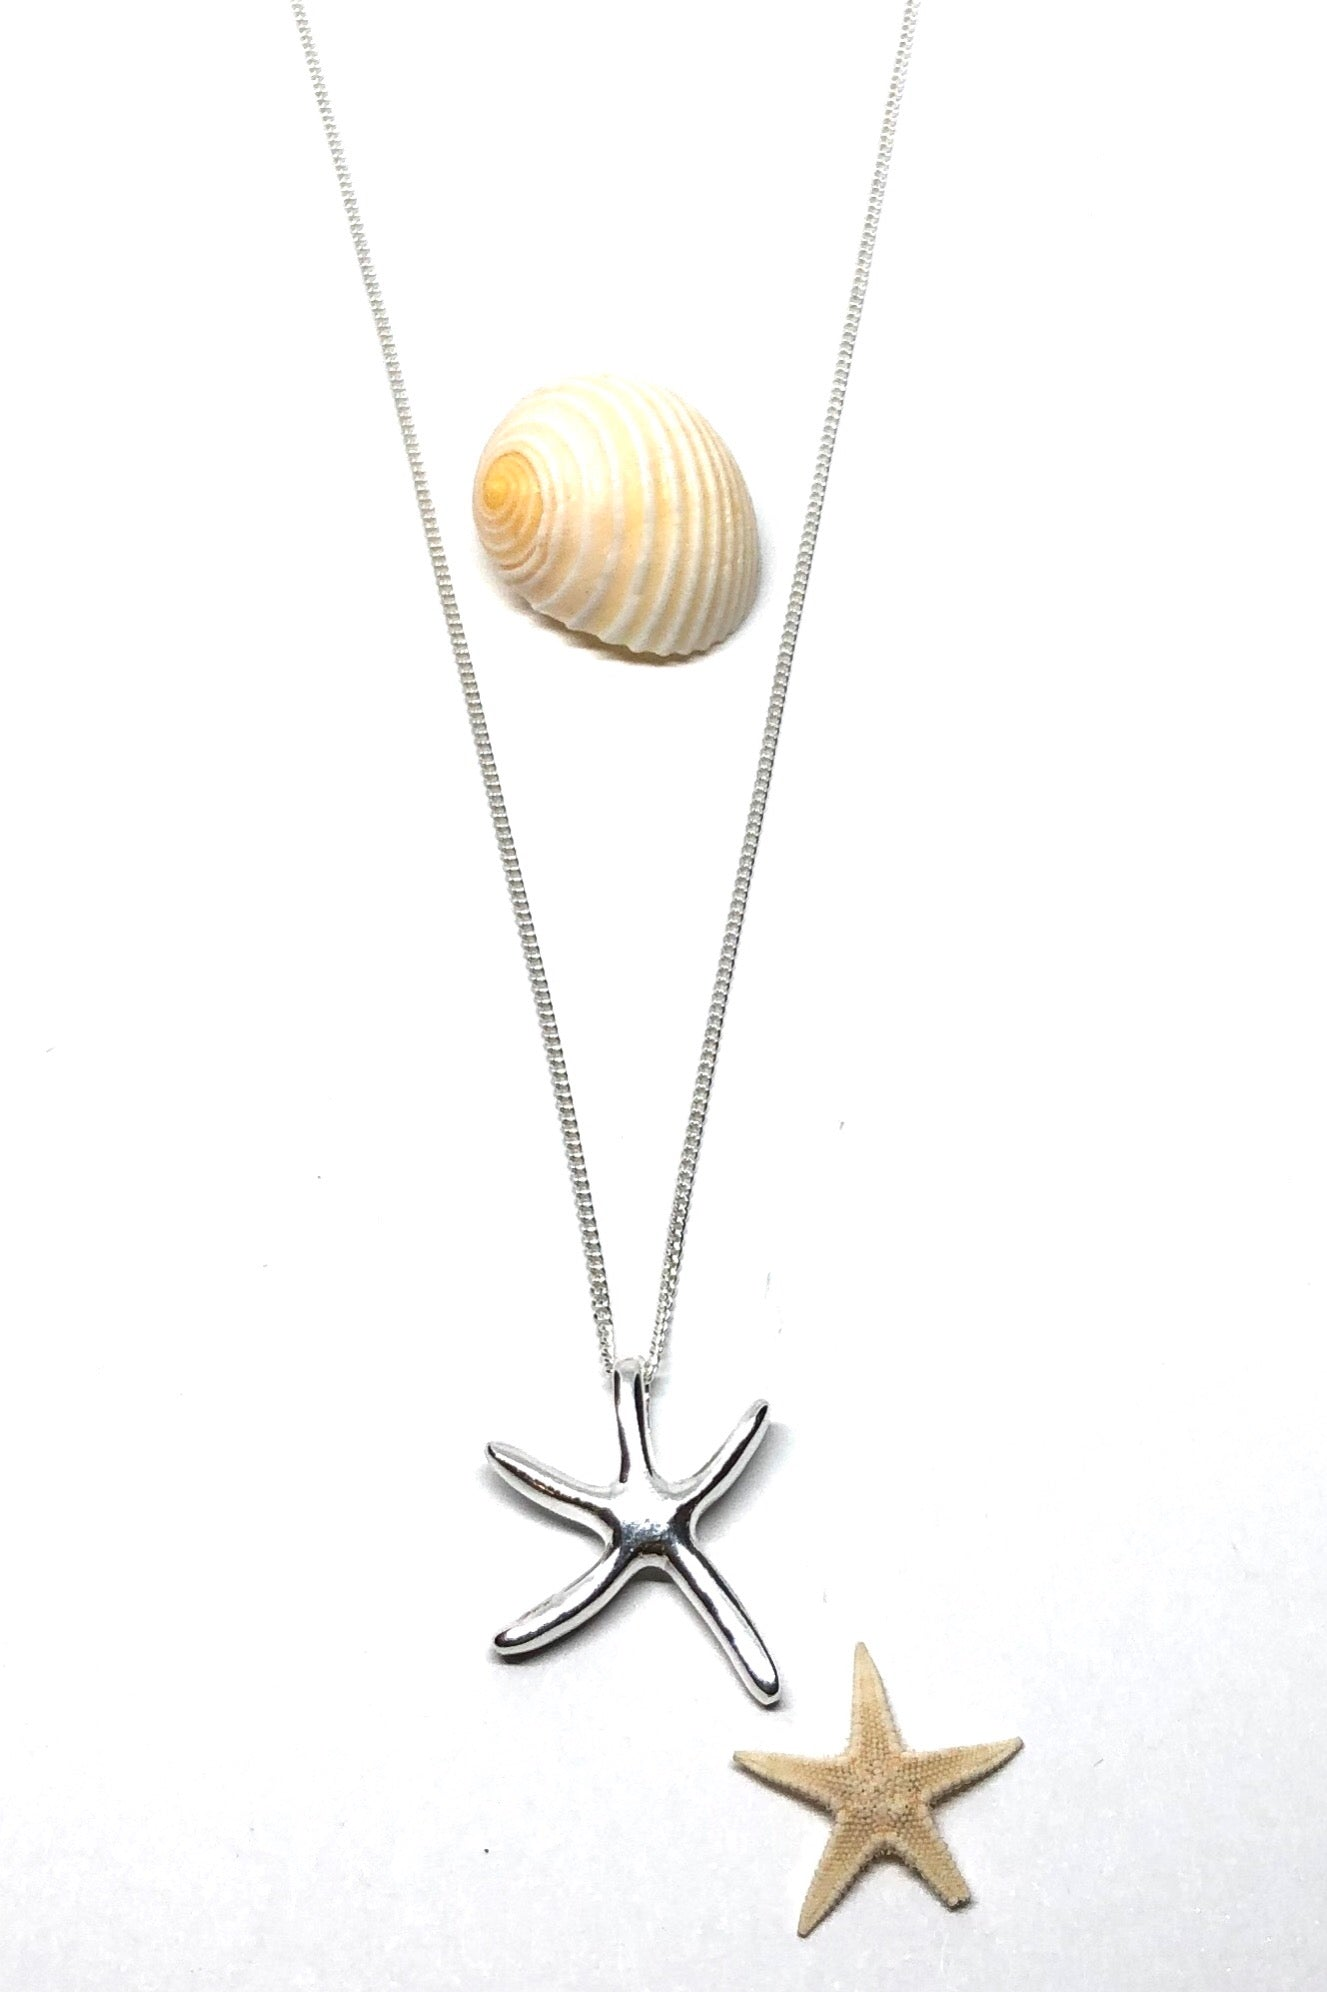 Necklace Cay Starfish Sublime in Silver is modern starfish shape, 925 solid silver, 2cm length, coming on a 925 silver chain.